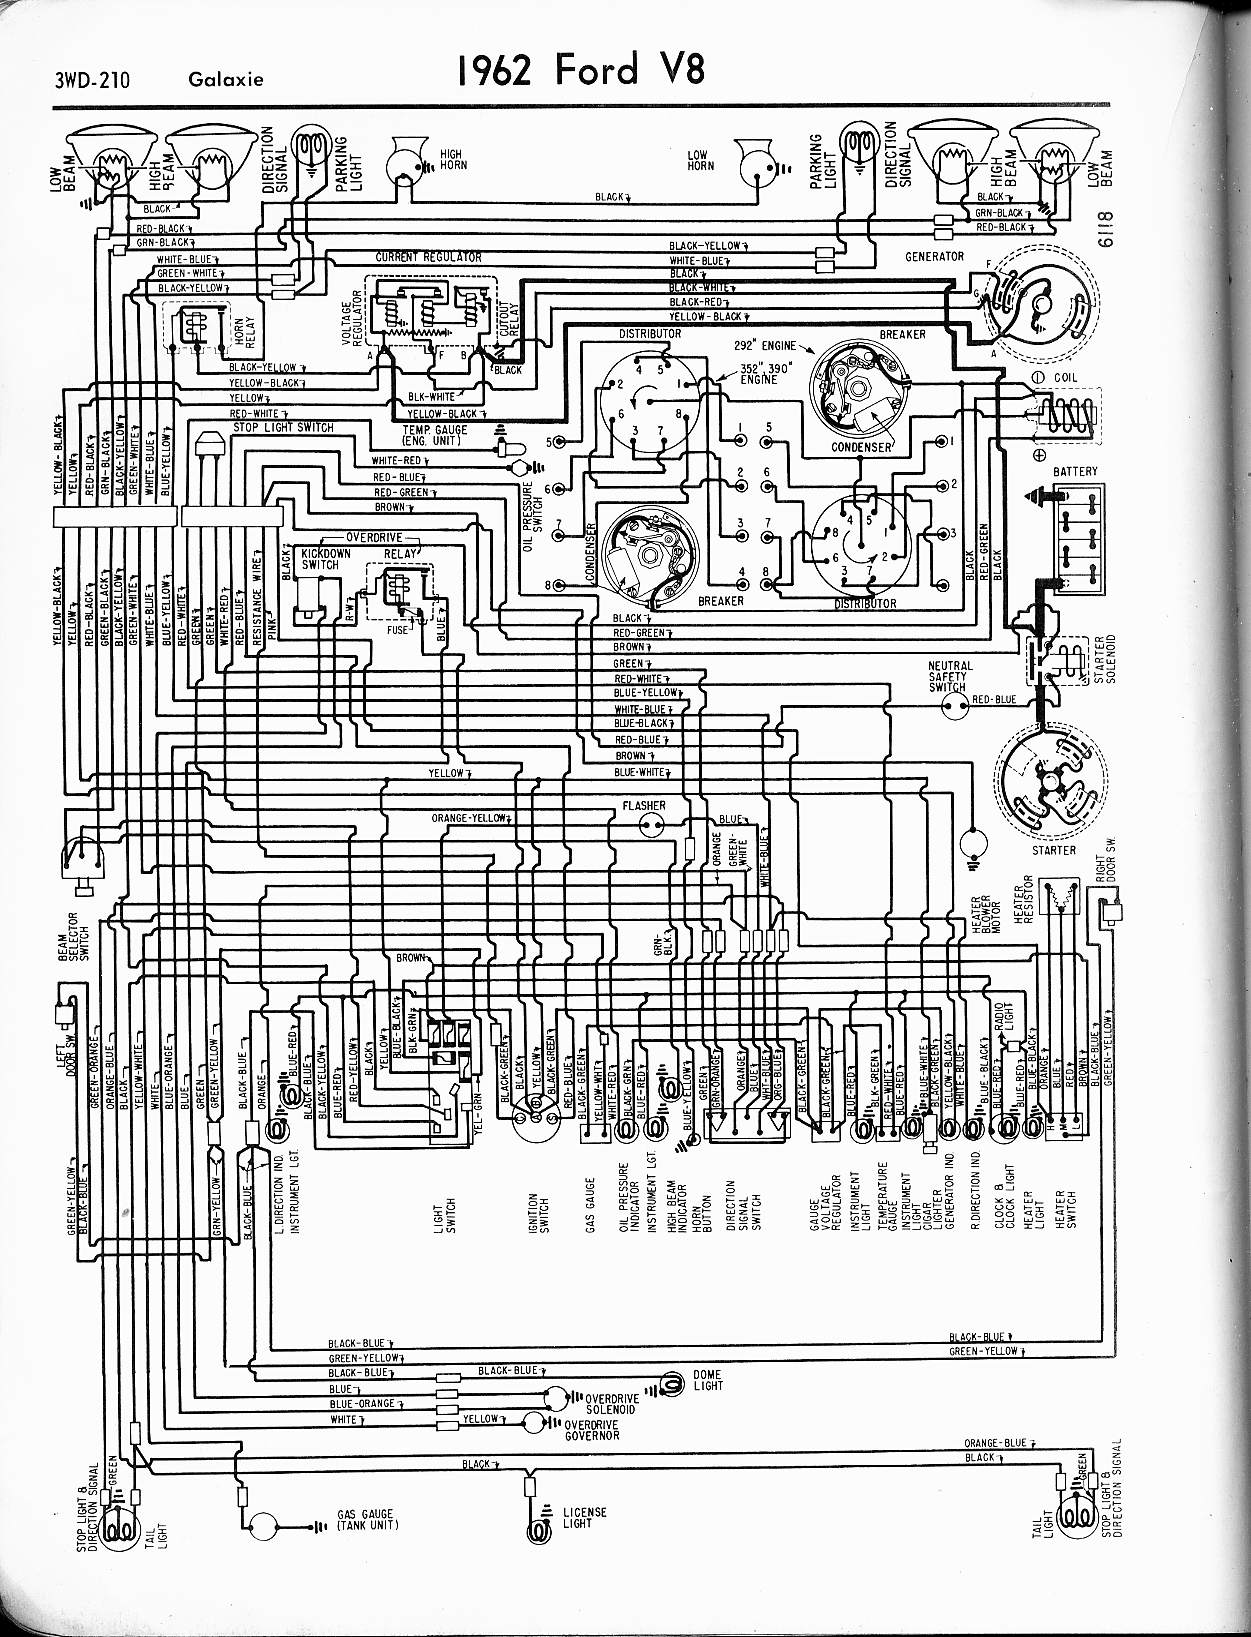 MWire5765 210 1964 ford fairlane wiring diagram ford ignition system wiring Universal Wiper Motor Wiring Diagram at fashall.co